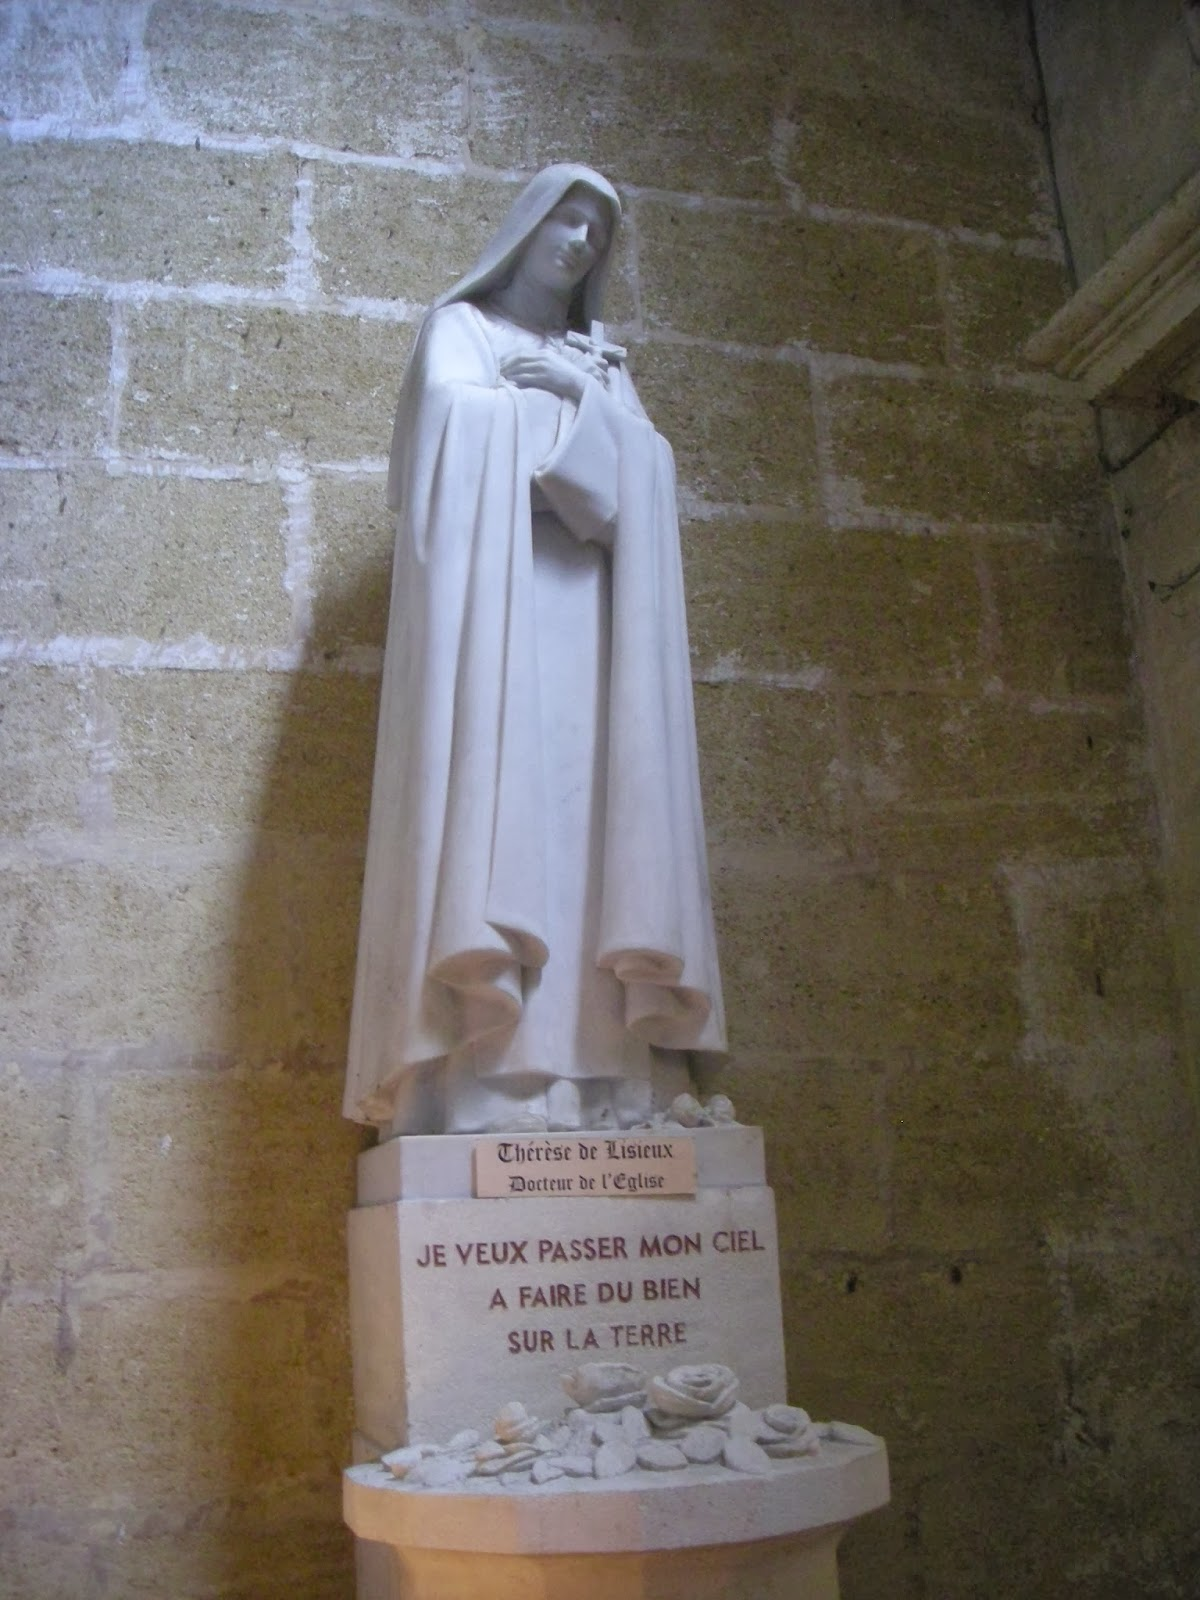 statue of St. Therese of Lisieux in France